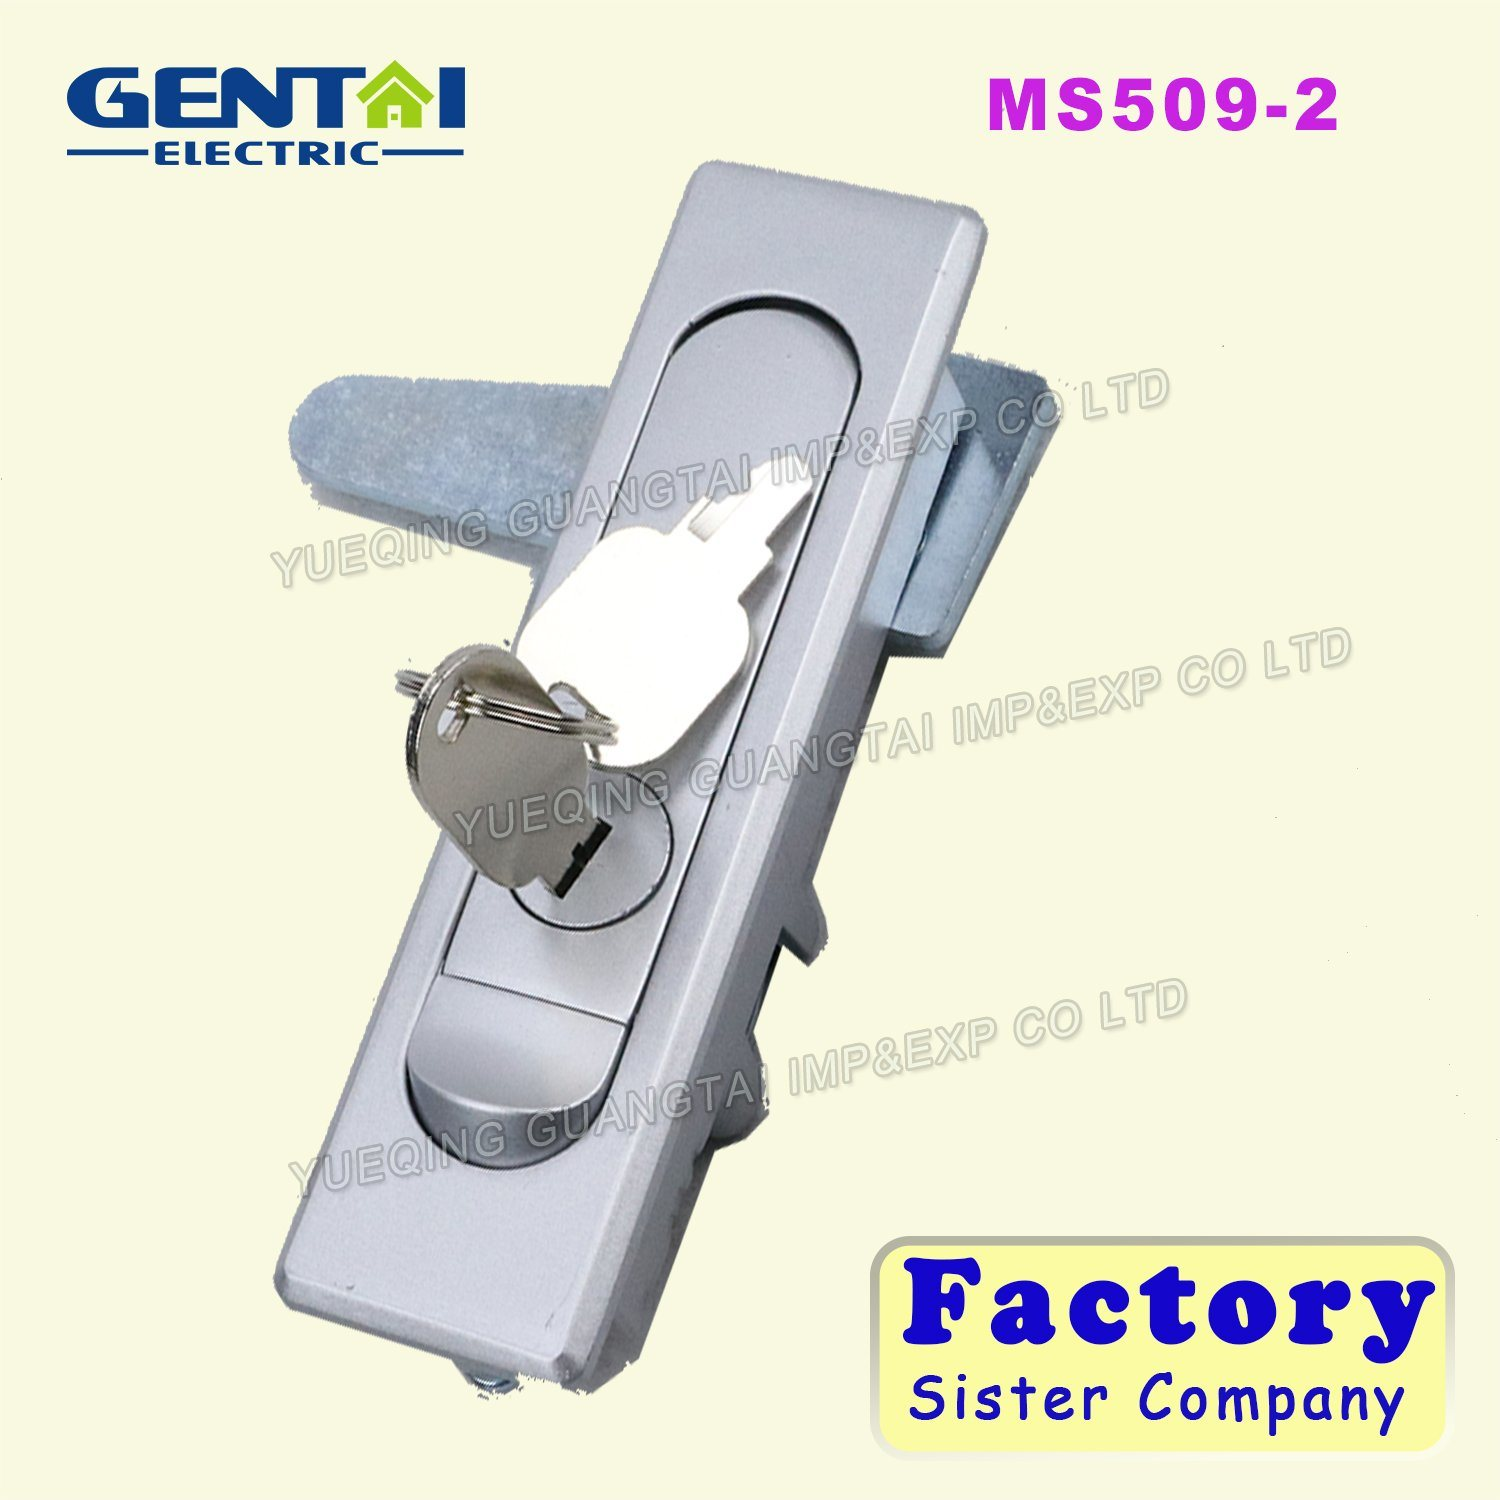 Newest Industrial Waterproof Panel Flat Door Lock with Push-Button Cylinder